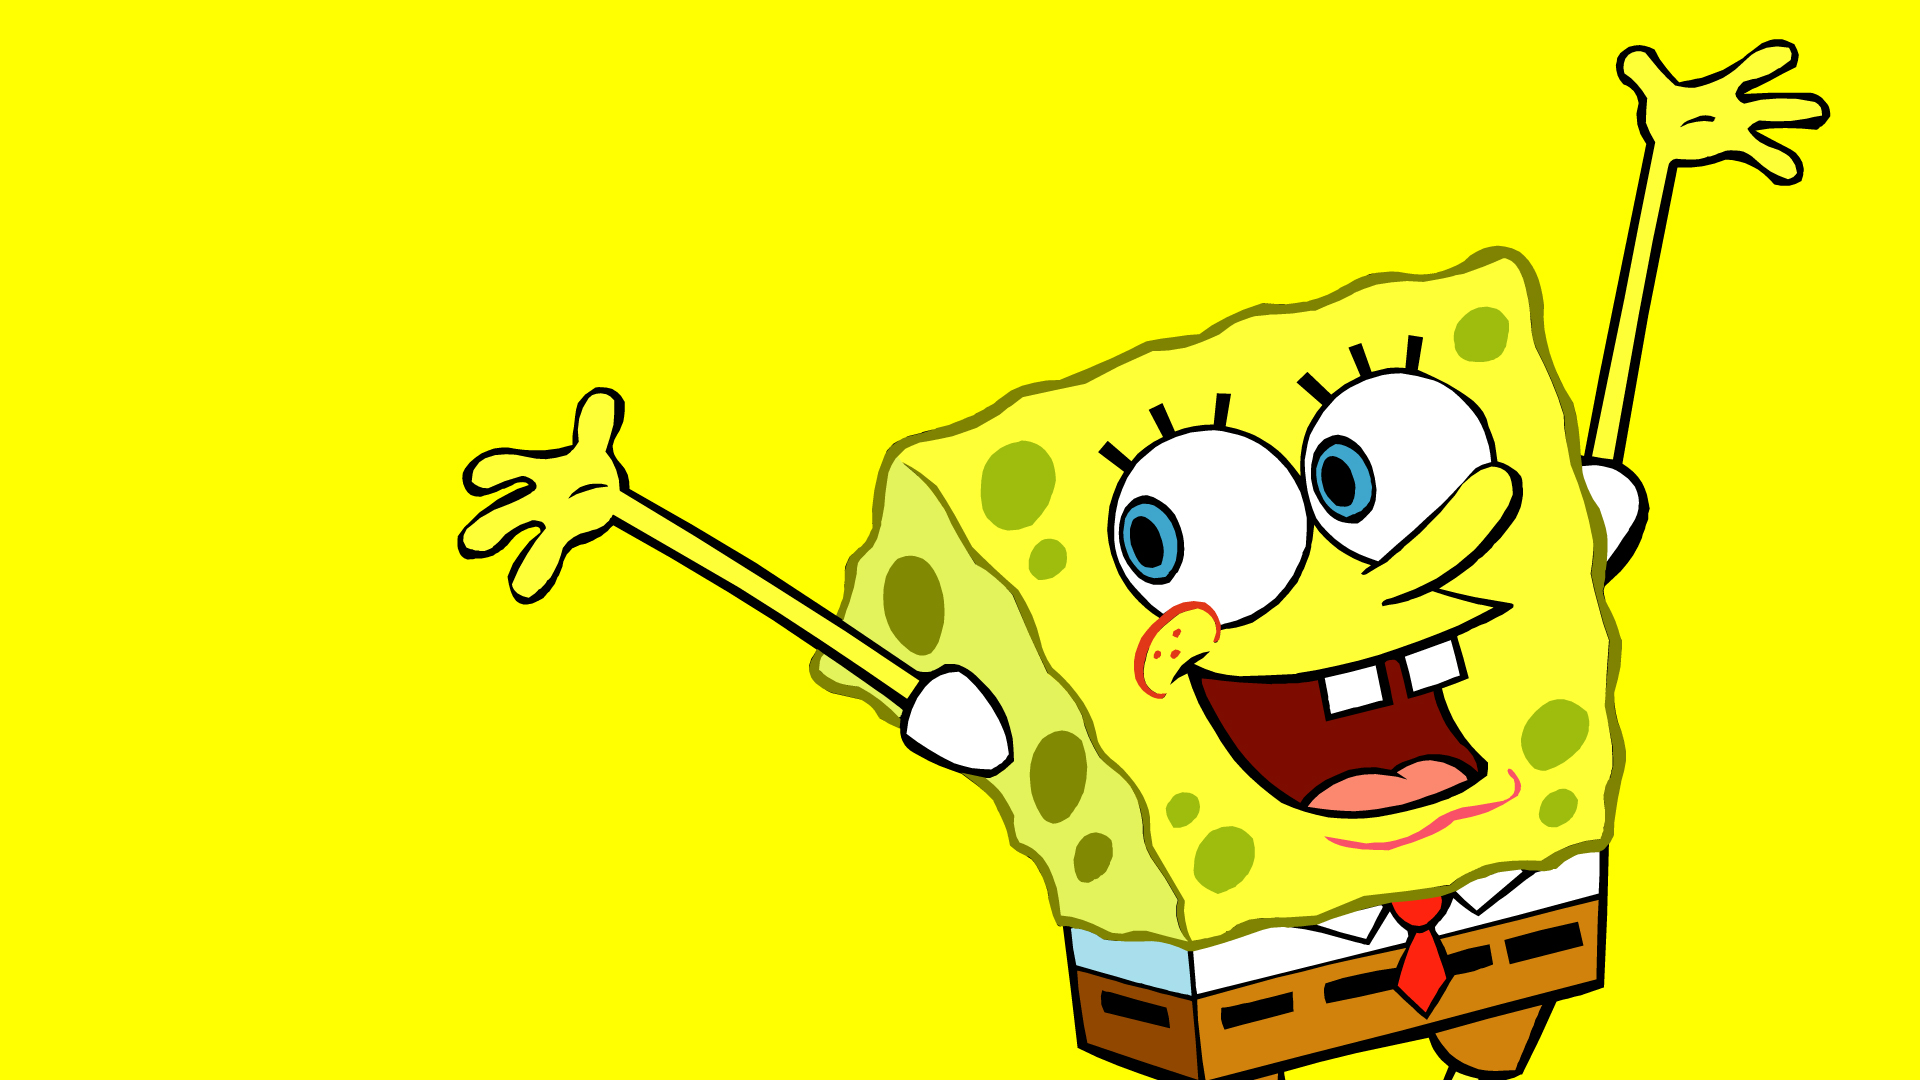 spongebob wallpaper 1920x1080 48630